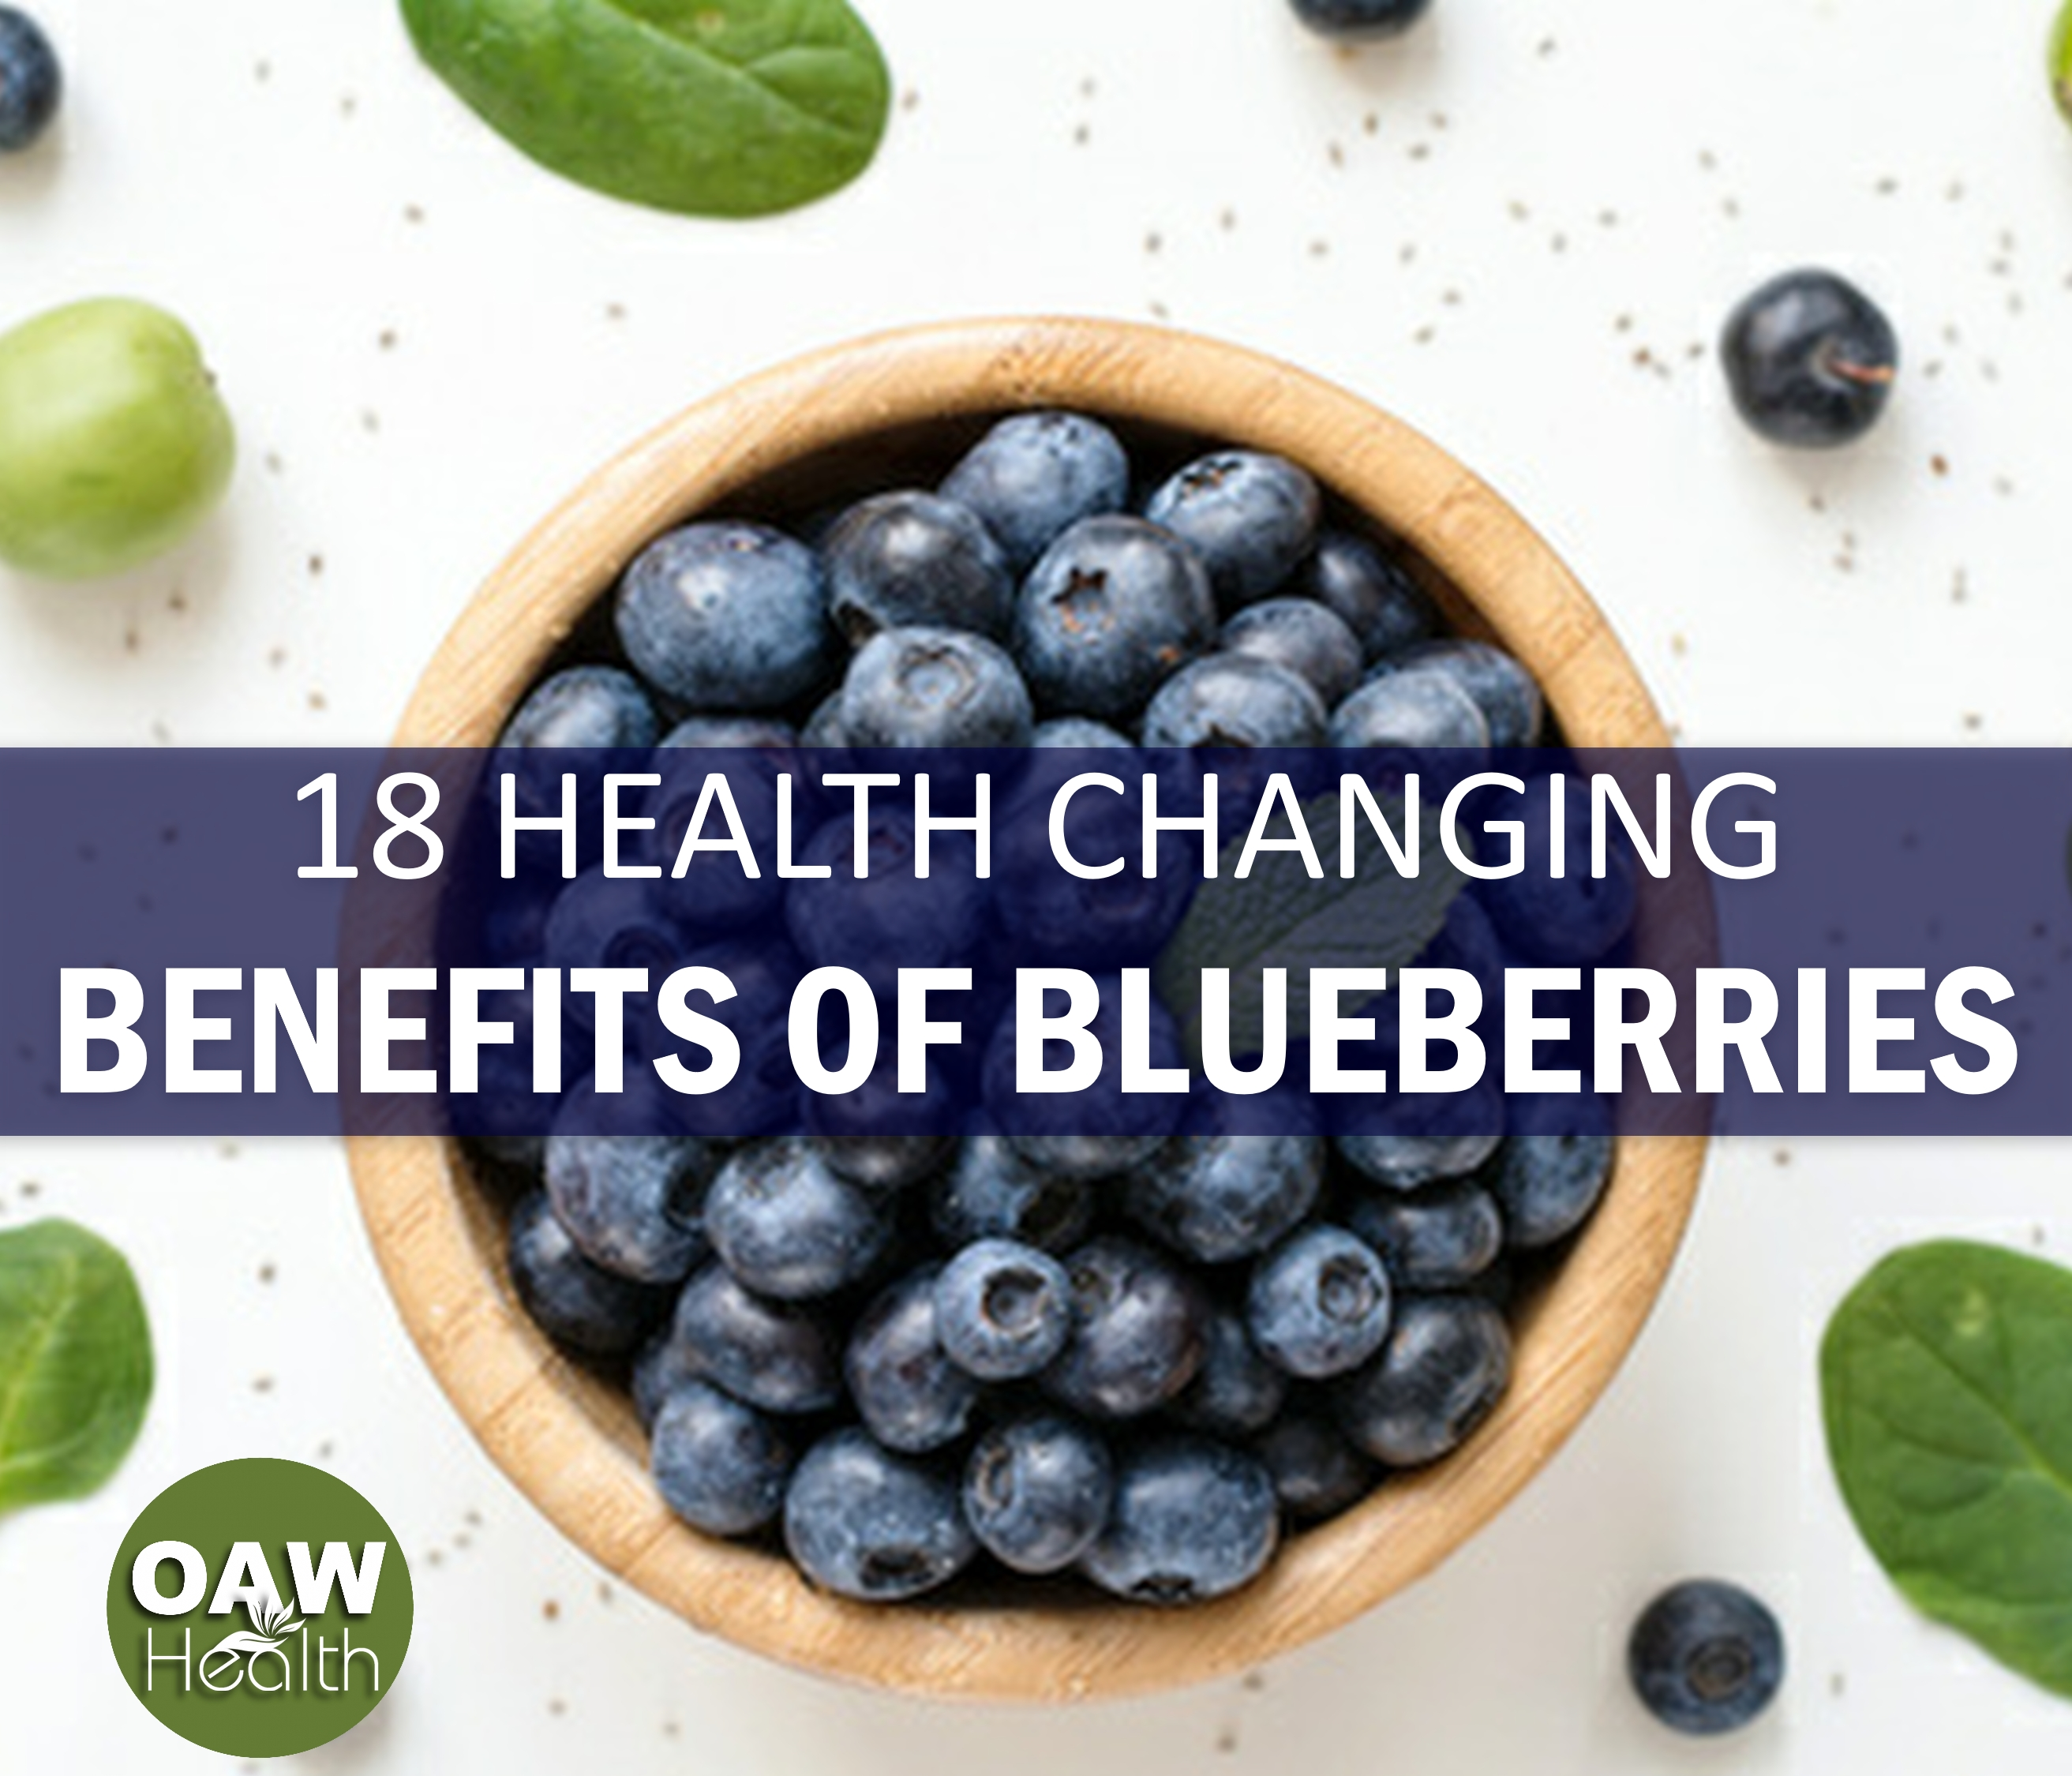 18 Health Changing Benefits of Blueberries